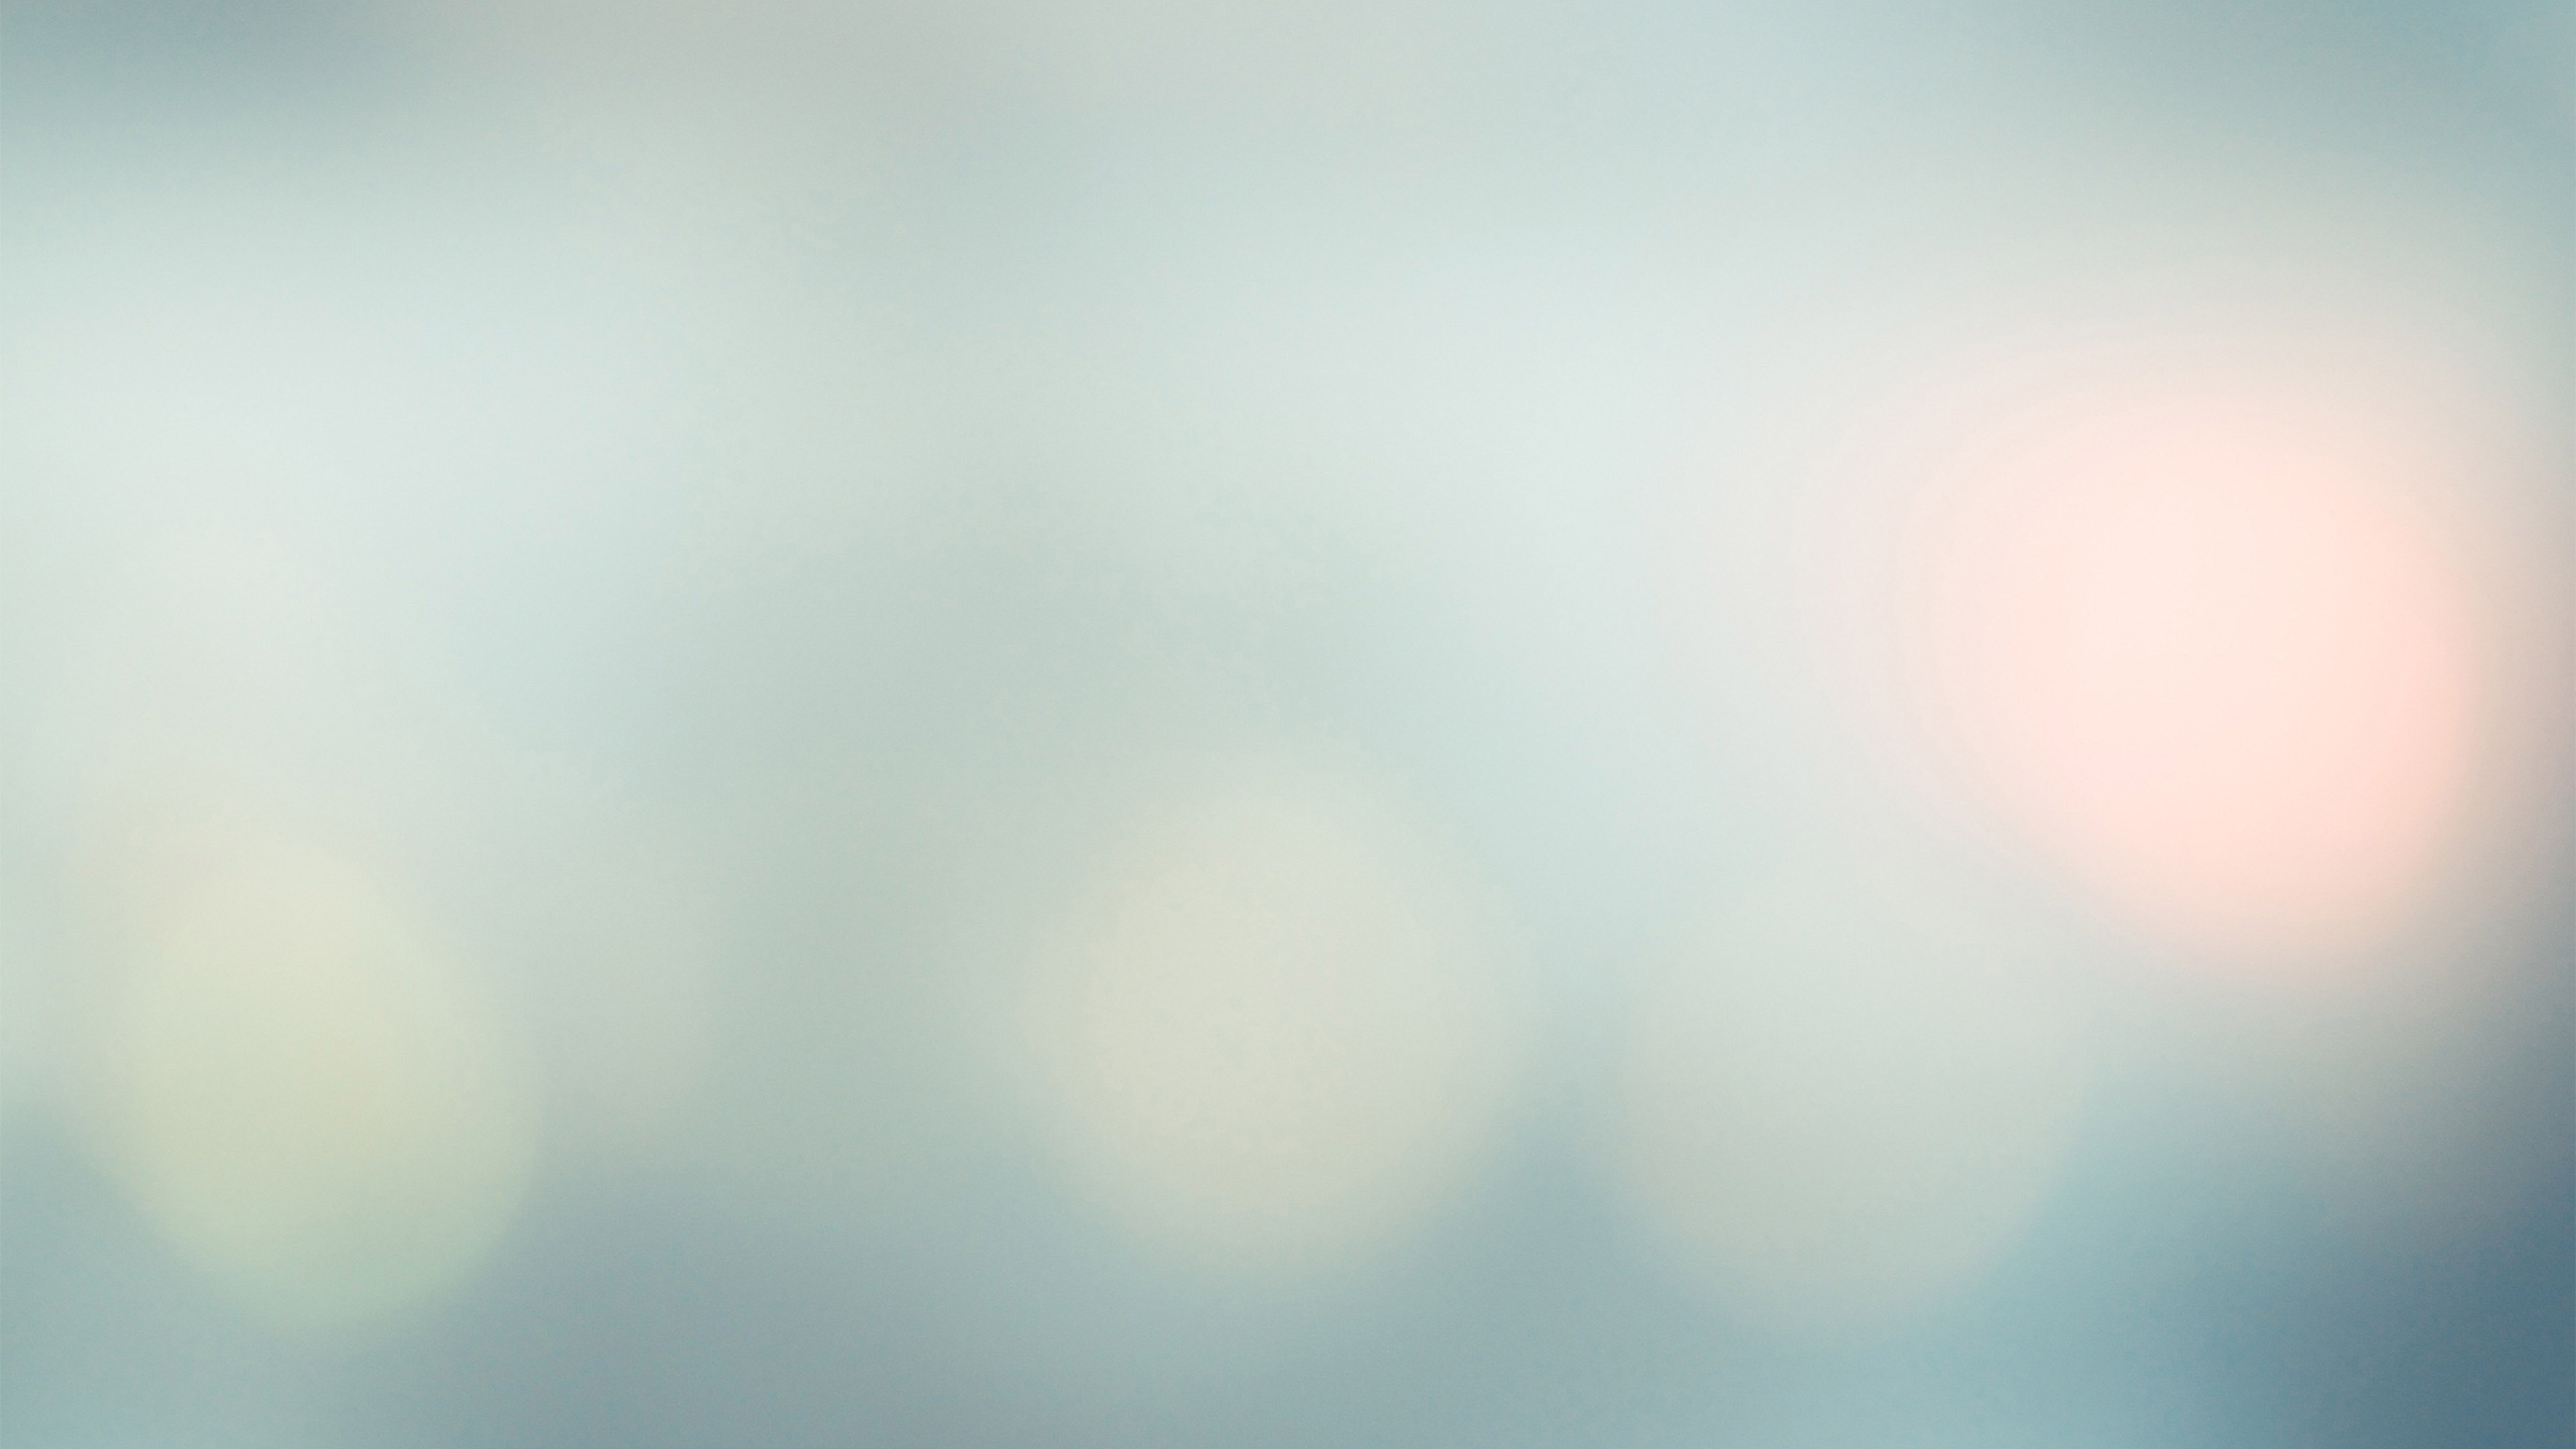 Free stock photo of blur background